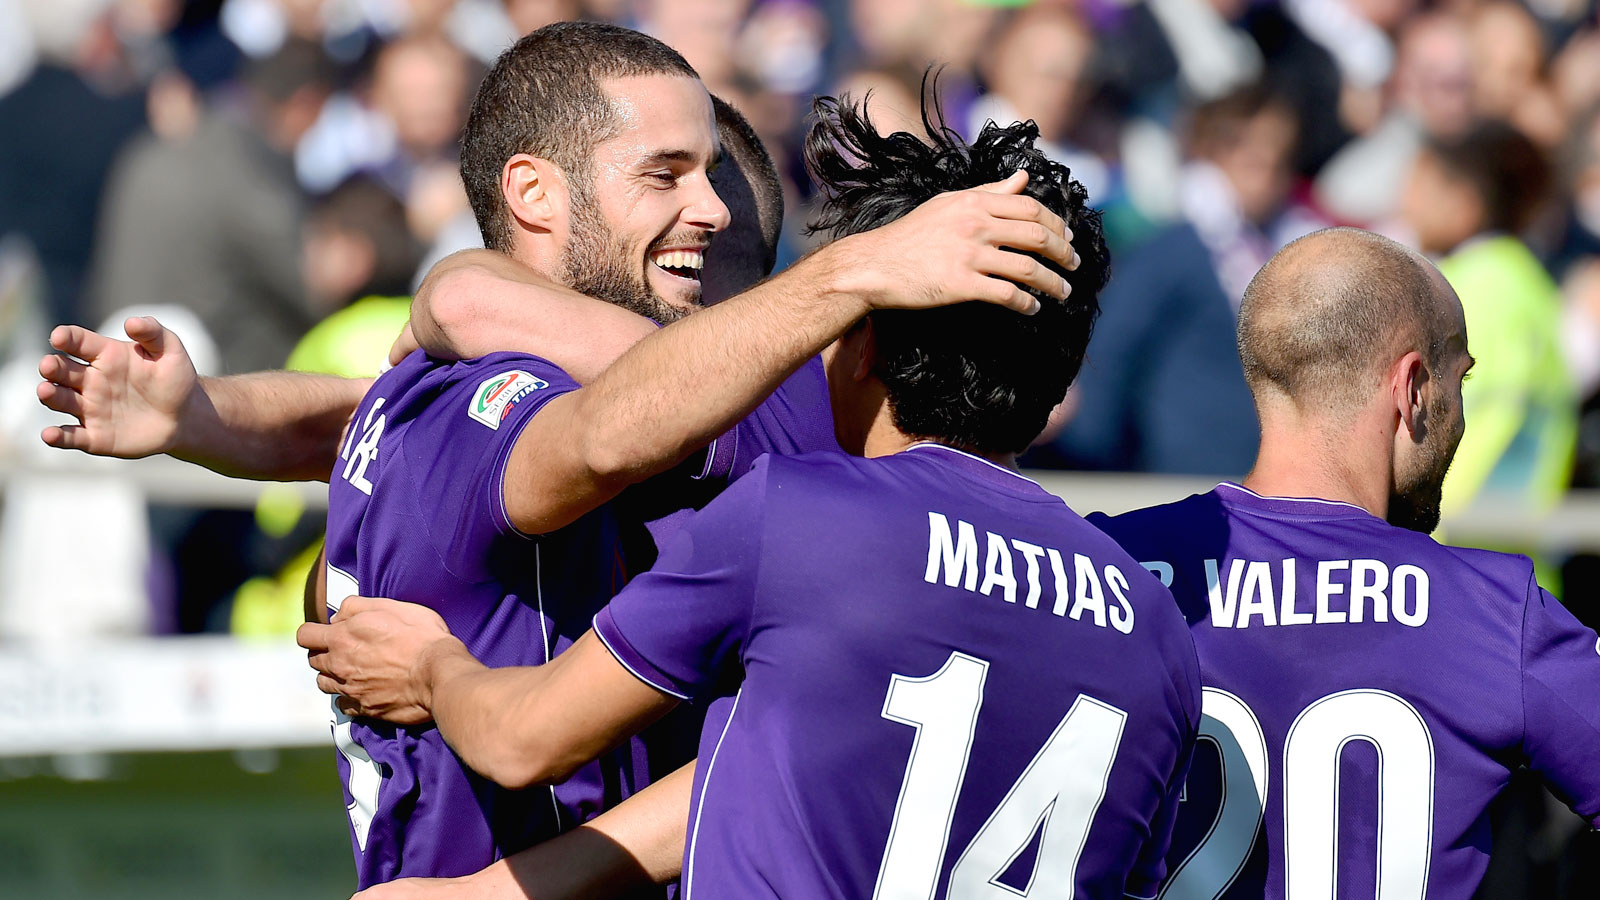 Fiorentina beats Frosinone to return to top of Serie A table